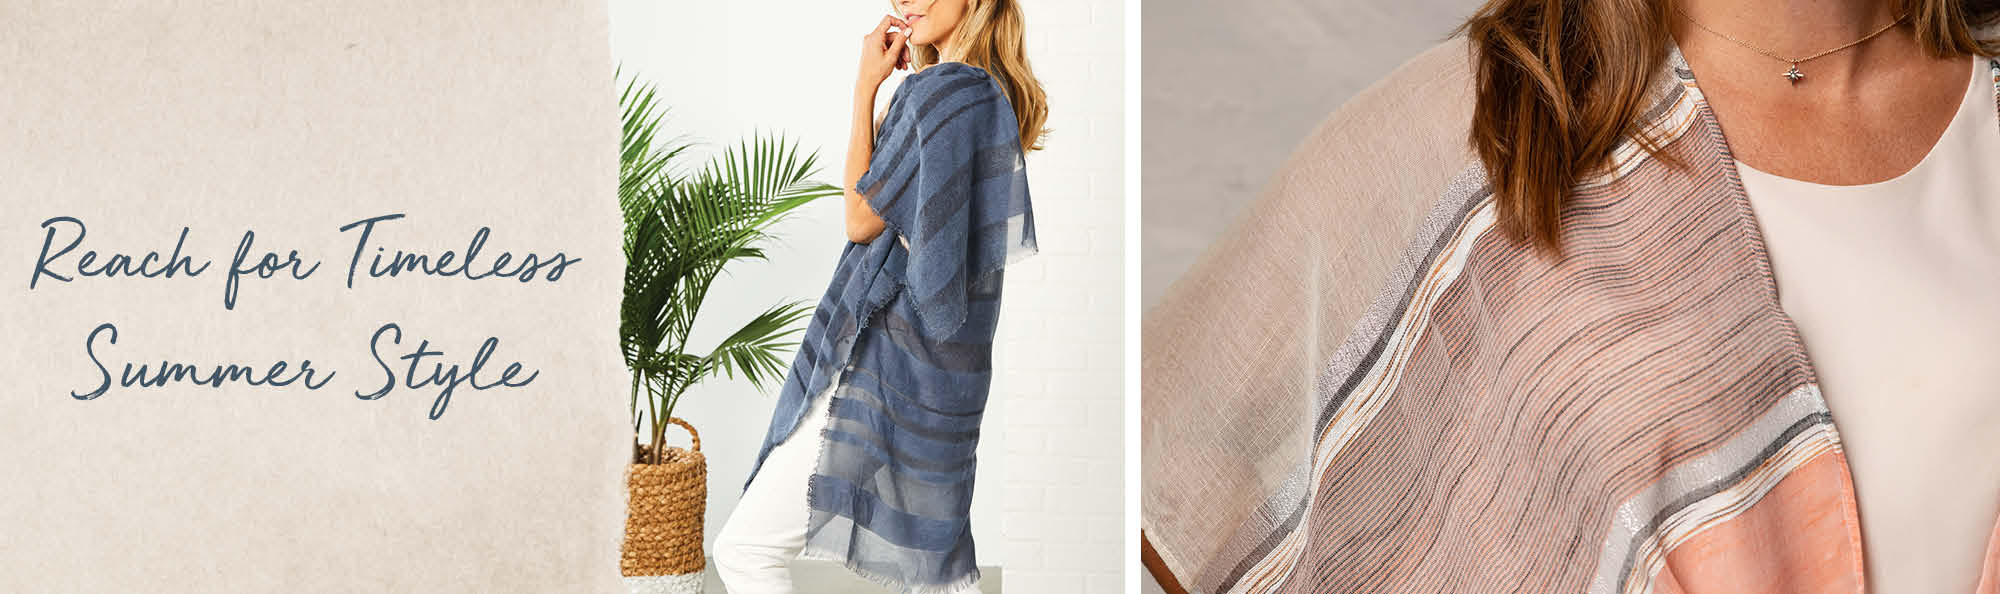 Reach for Timeless Summer Style. Woman wearing a lightweight blue wrap and another woman wearing a striped wrap.